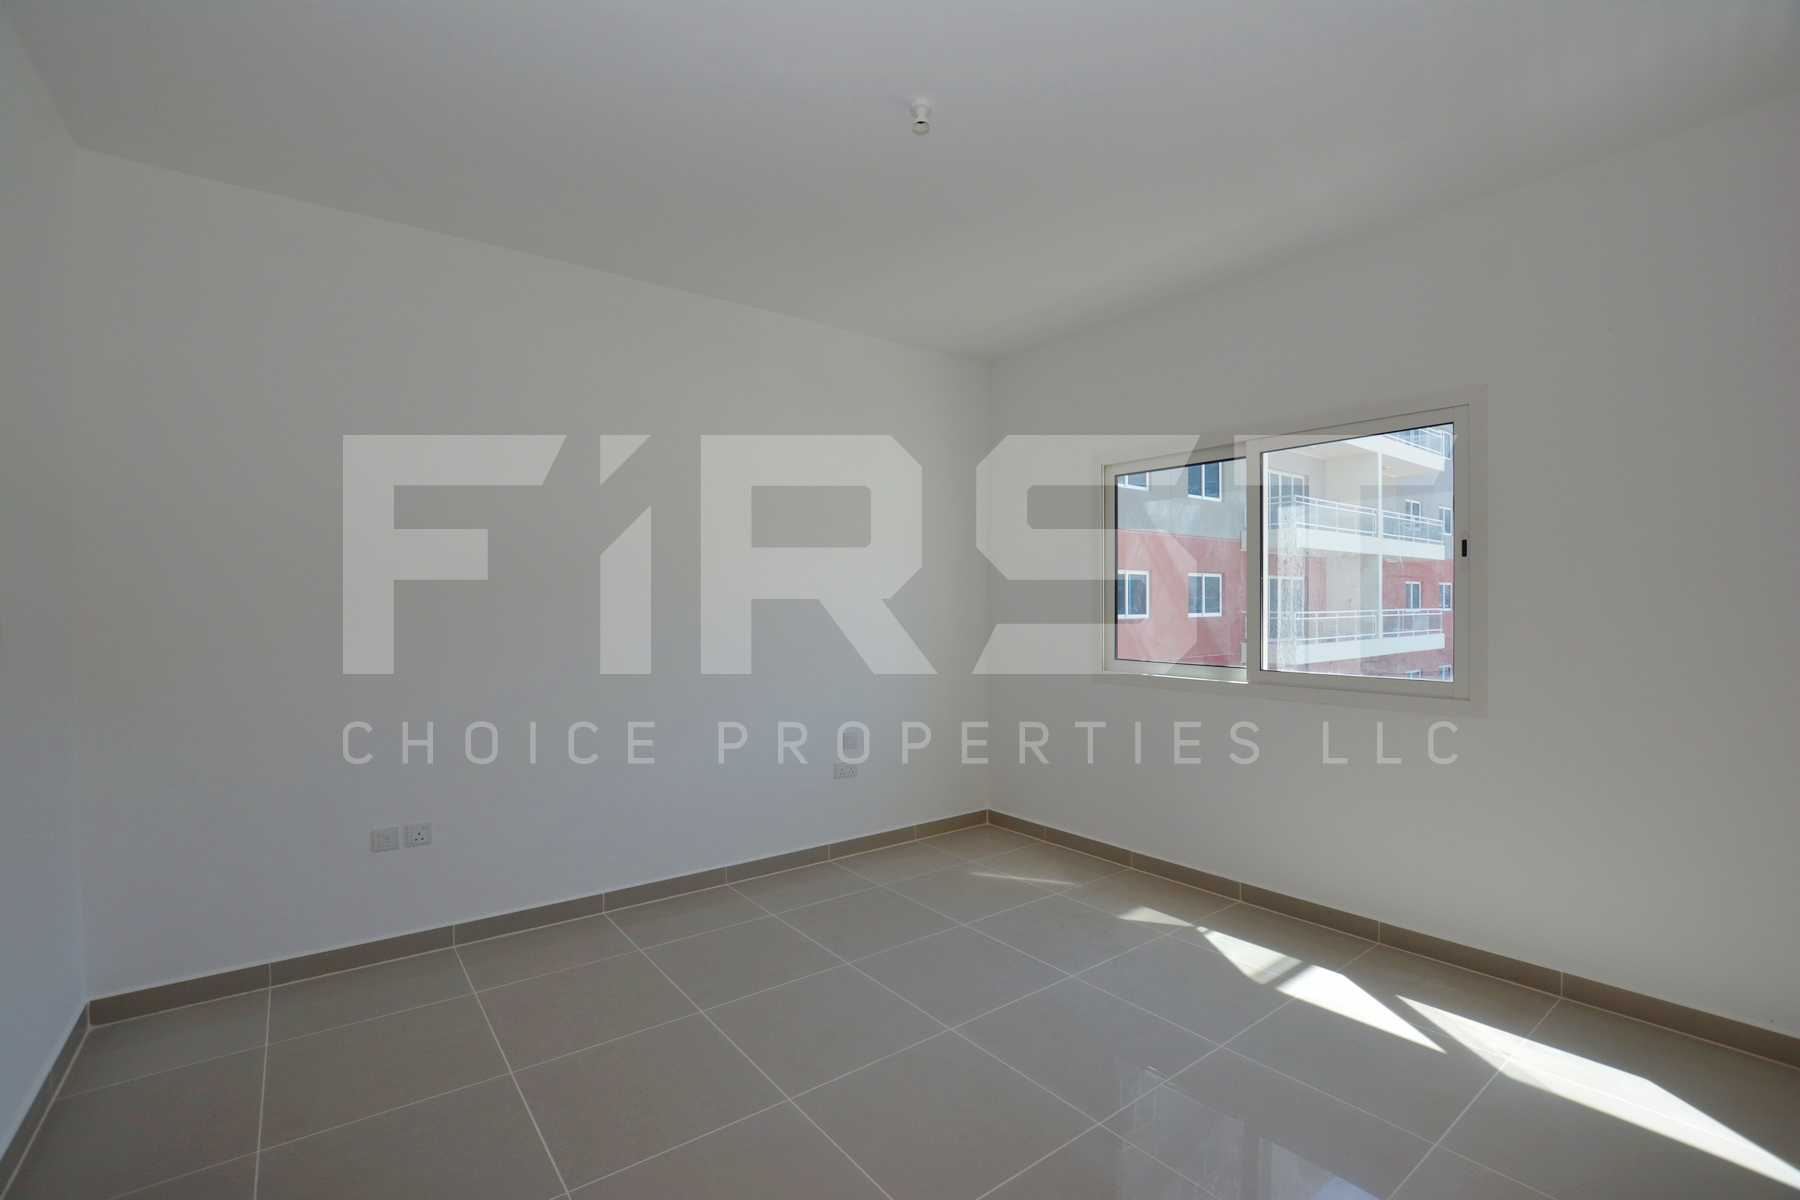 Internal Photo of 1 Bedroom Apartment Type A in Al Reef Downtown Al Reef Abu Dhabi UAE 74 sq.m 796 sq.ft (1).jpg